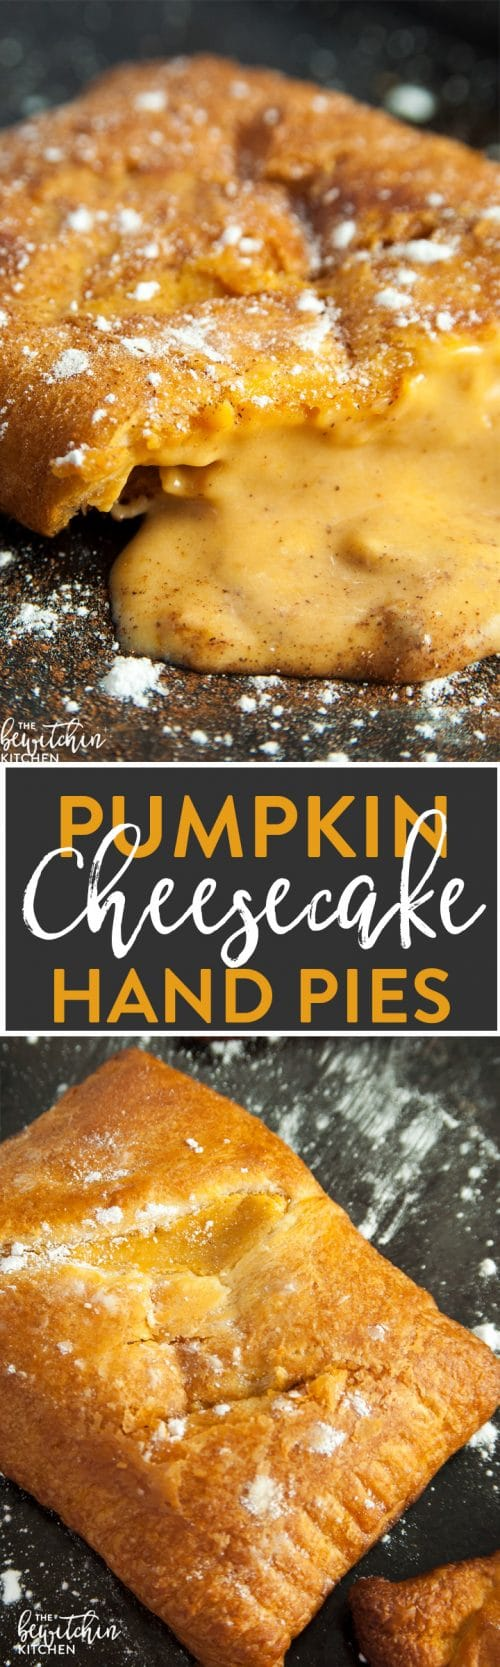 Pumpkin Cheesecake Hand Pies - whether you call them hand pies or turnovers these pumpkin pastry desserts are delicious recipe to make. They're easy and take less than 20 minutes!